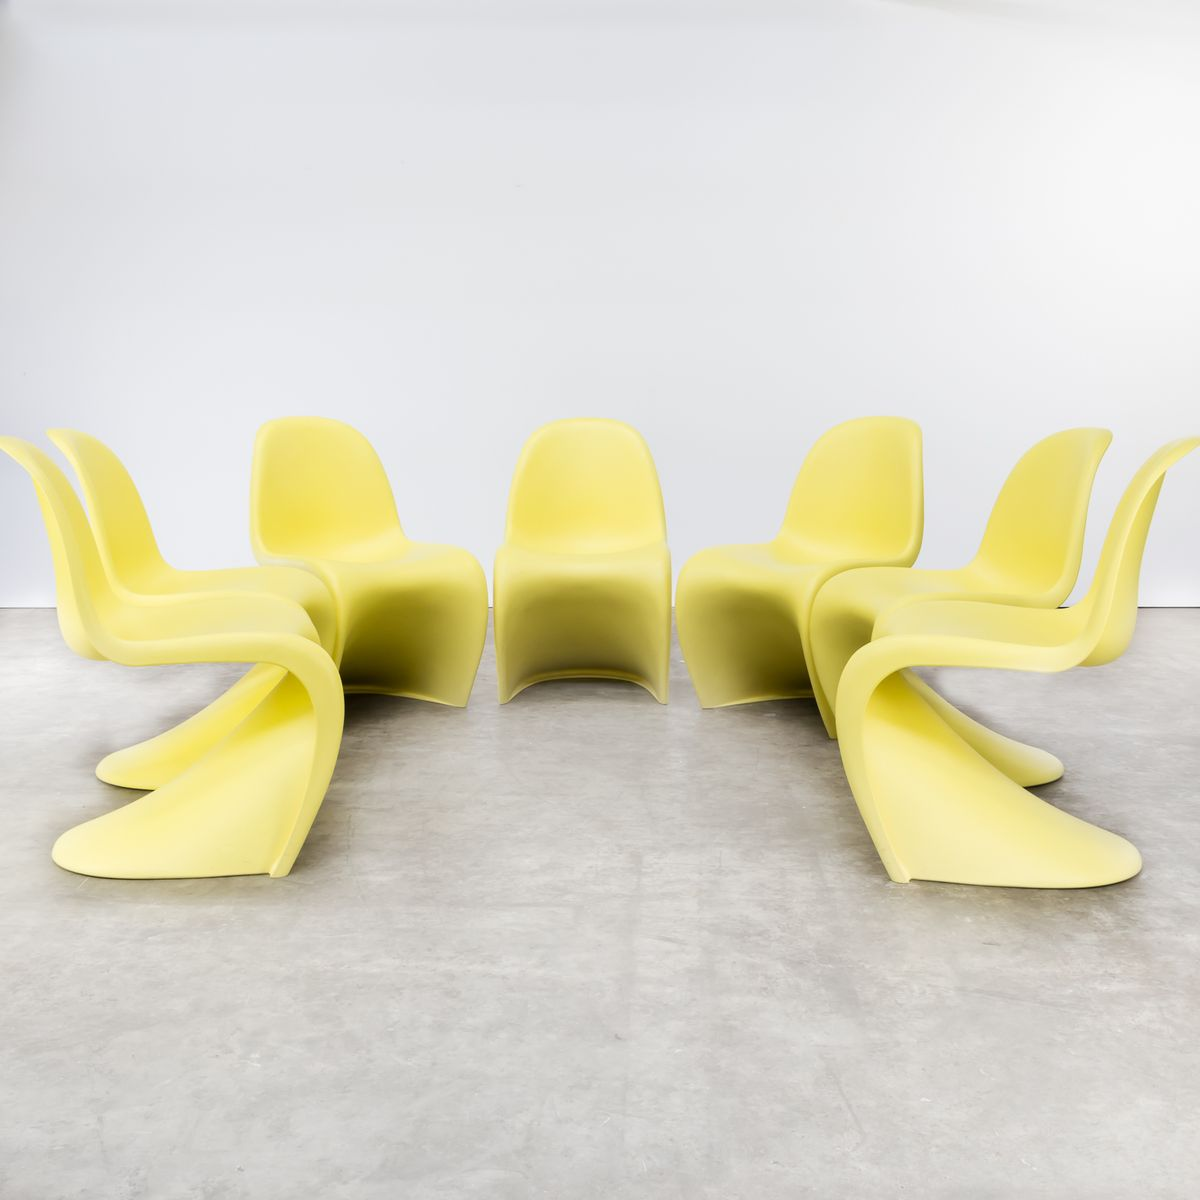 vintage panton chairs by verner panton for vitra set of 7 - Panton Chair